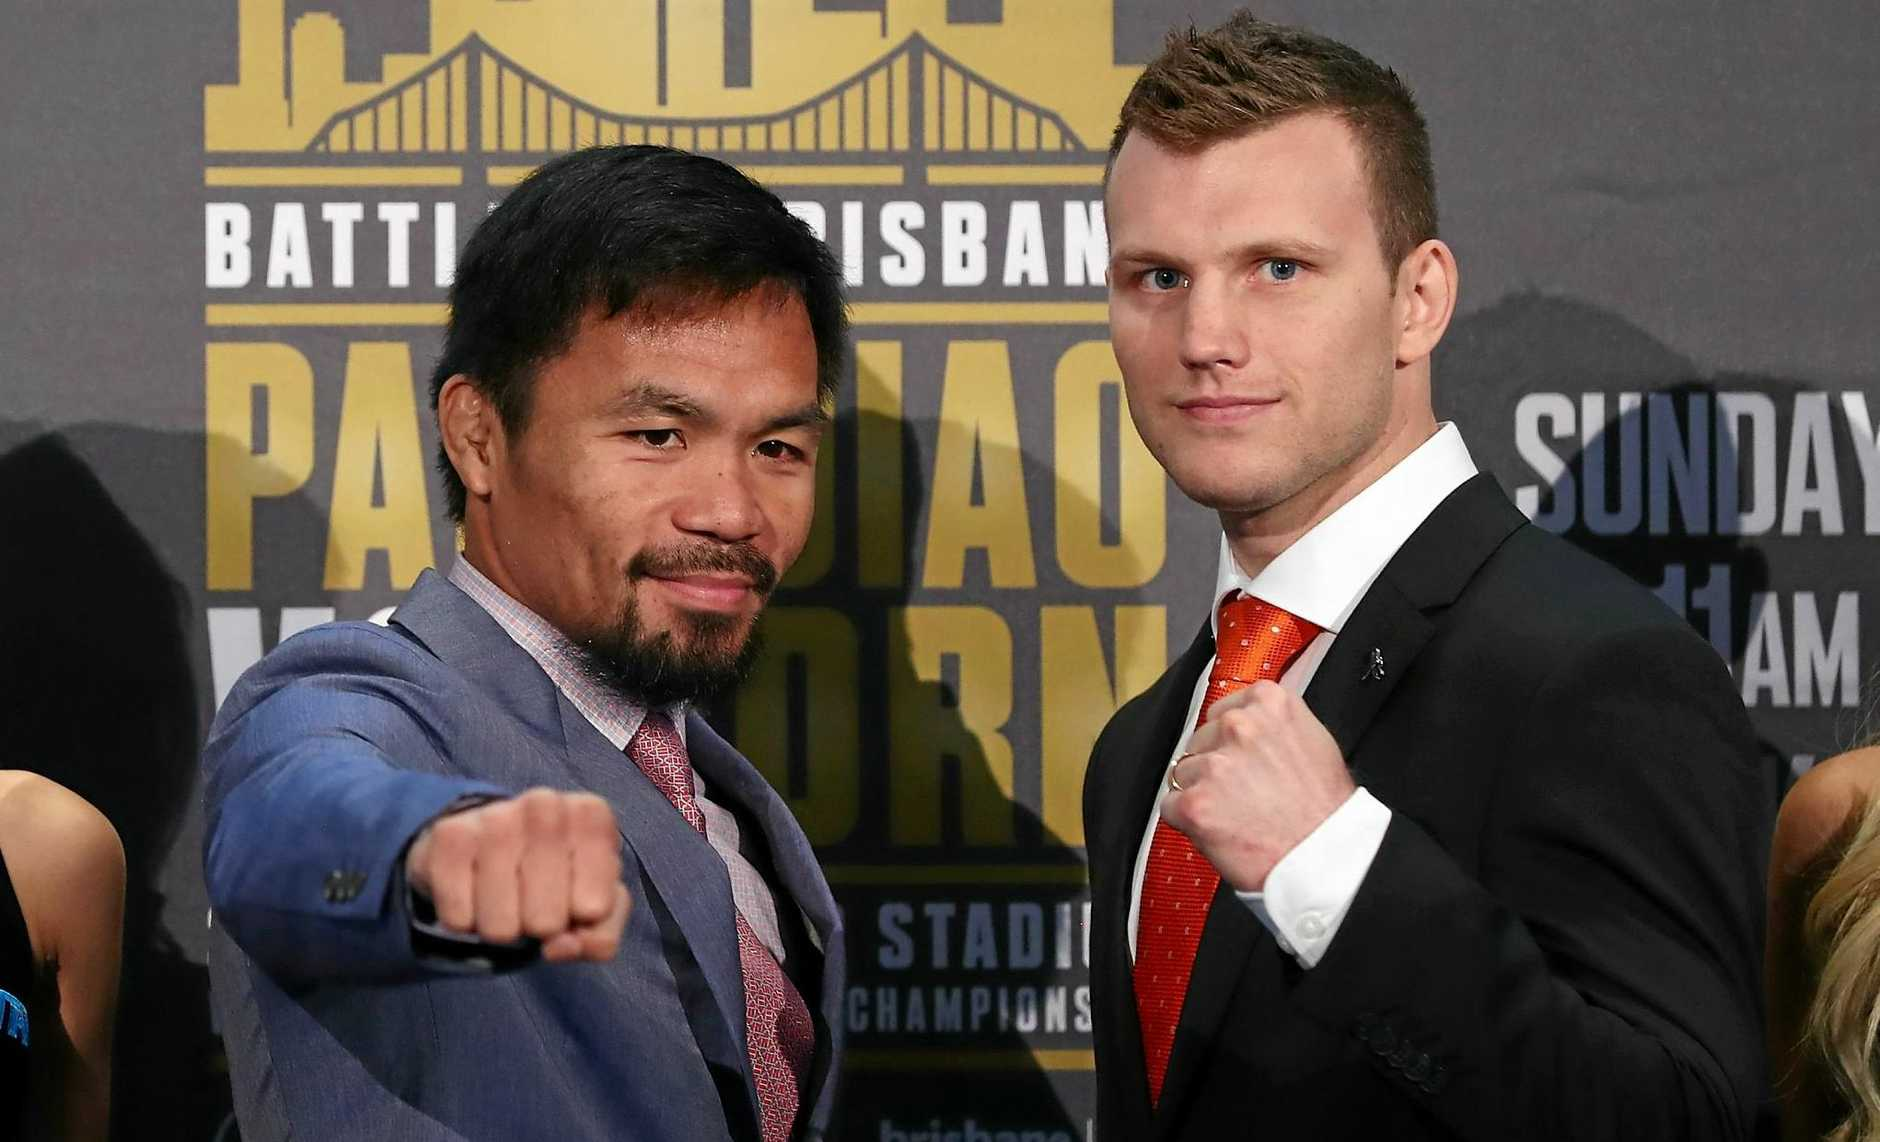 BRISBANE, AUSTRALIA - JUNE 28: Manny Pacquiao and Jeff Horn face off after the official press conference for WBO World Welterweight Championship at Suncorp Stadium on June 28, 2017 in Brisbane, Australia. (Photo by Chris Hyde/Getty Images)